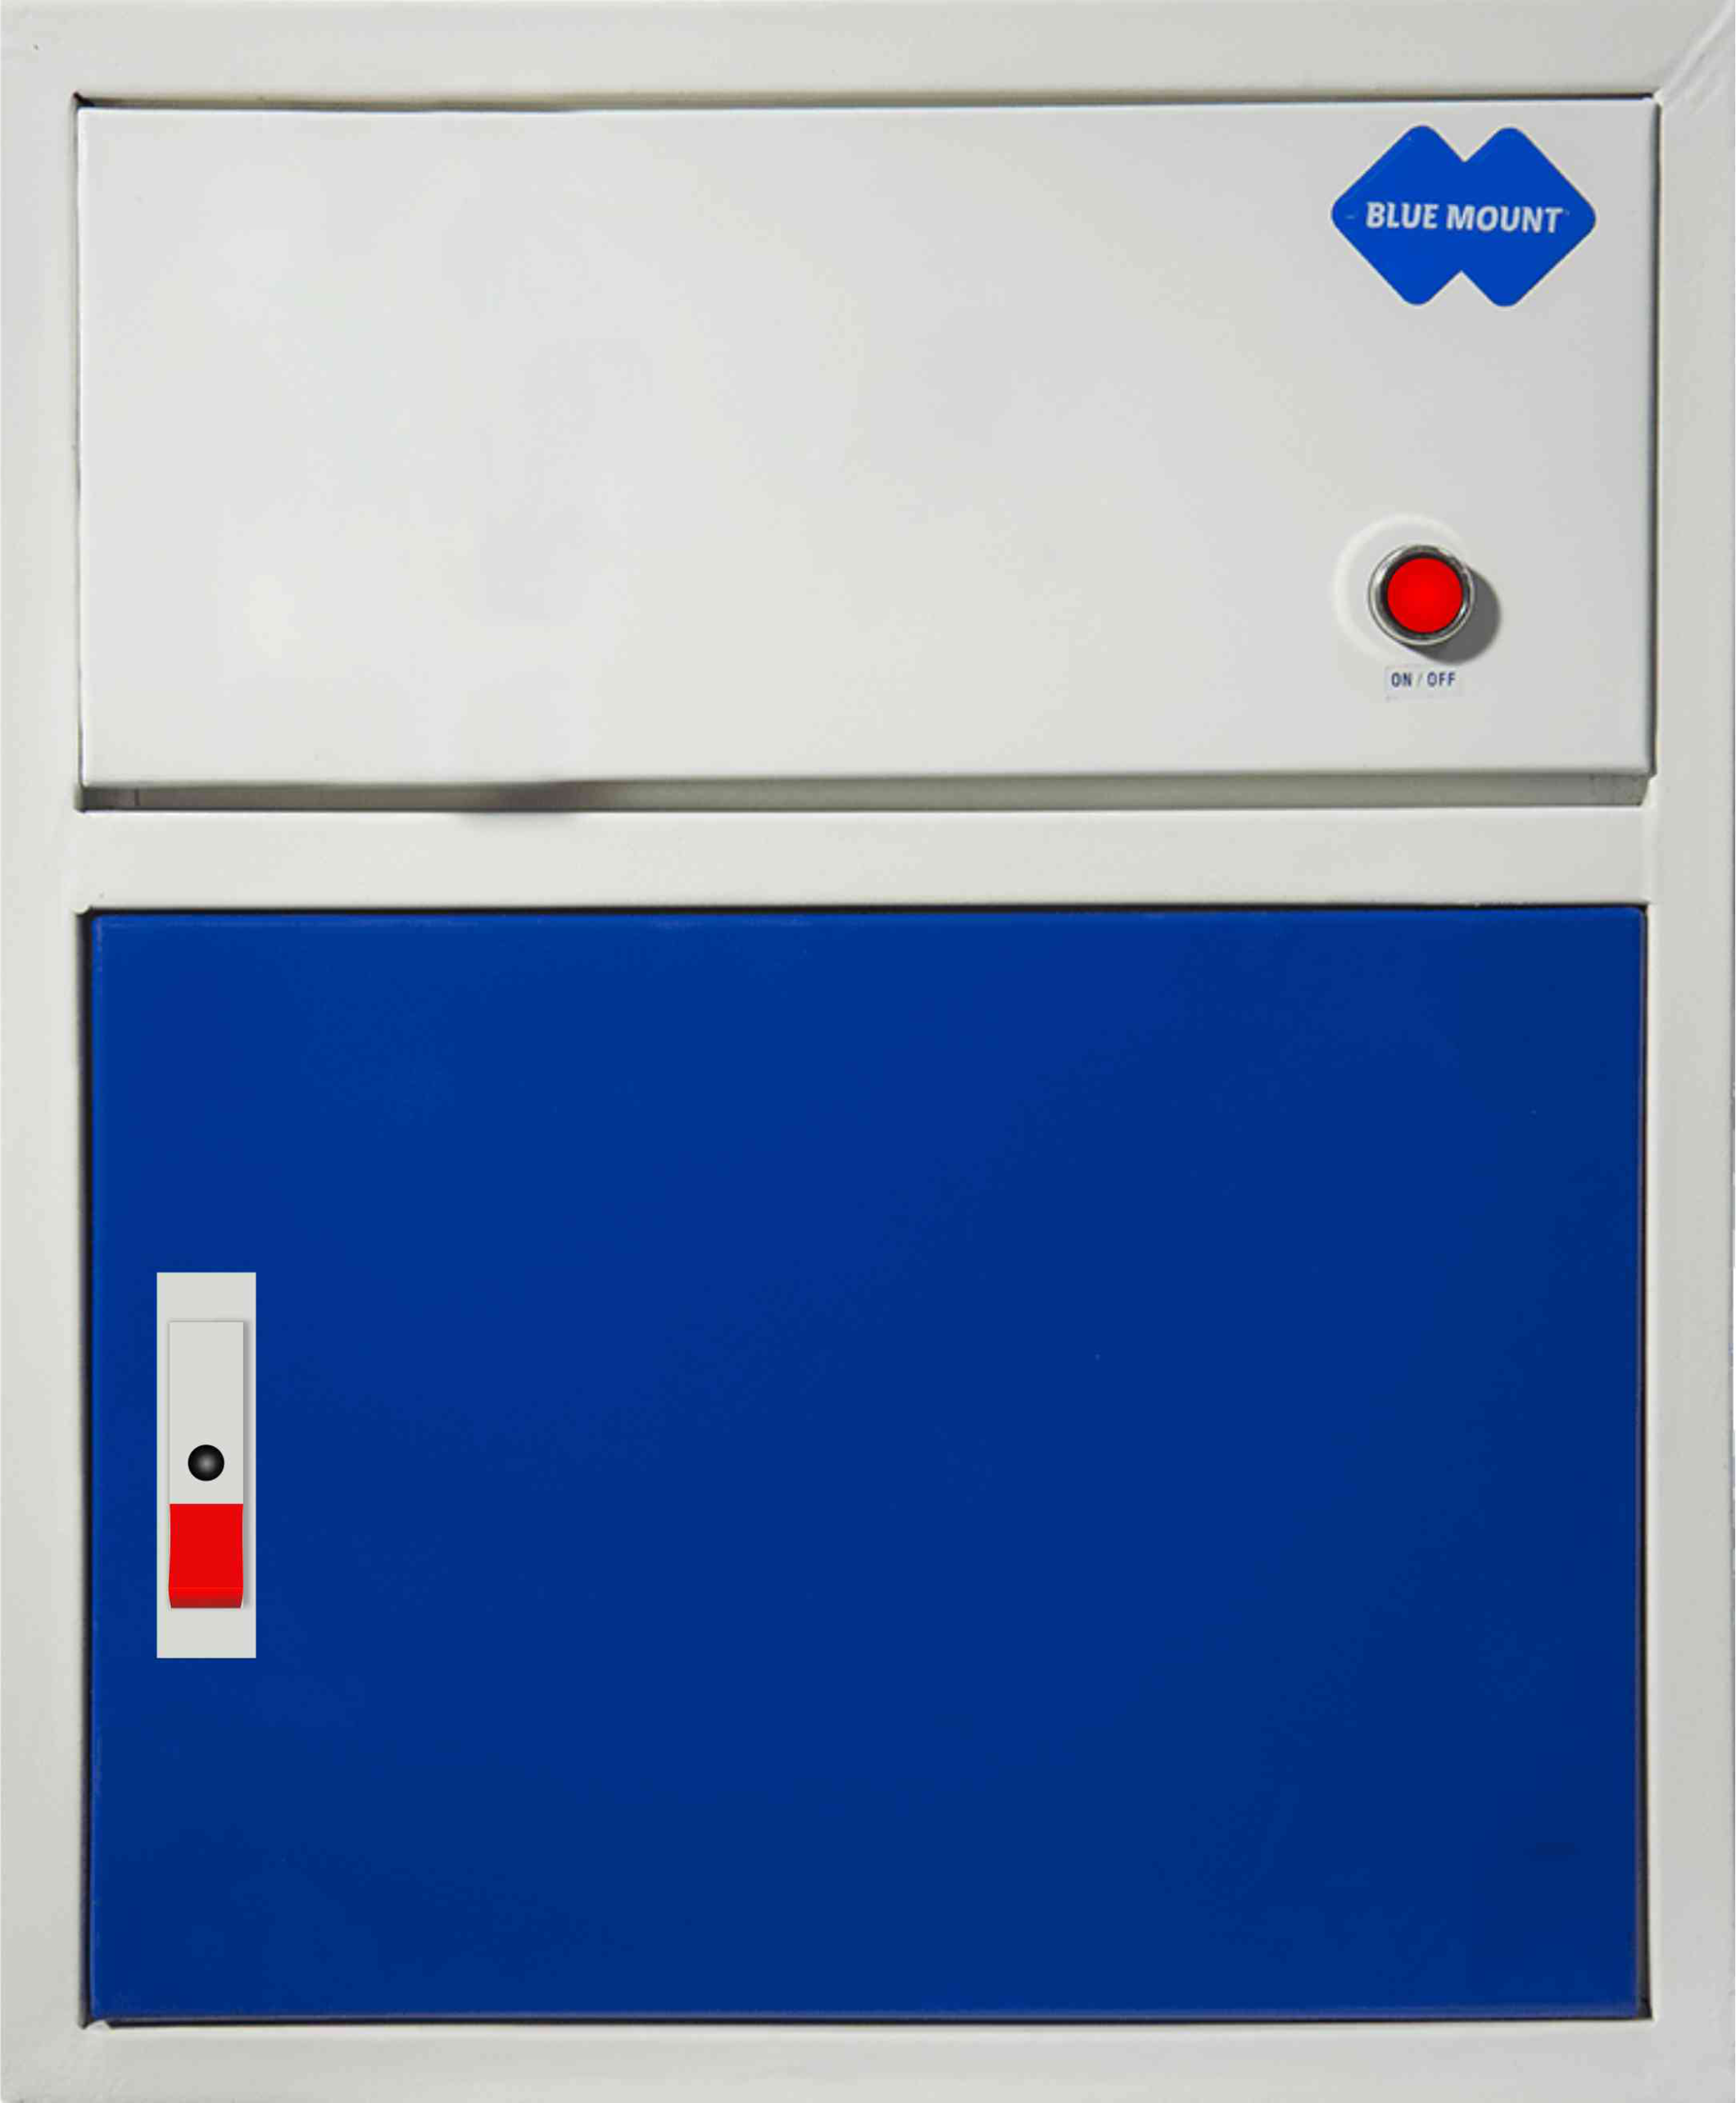 Blue Mount Shine 150 UV Water Purifier